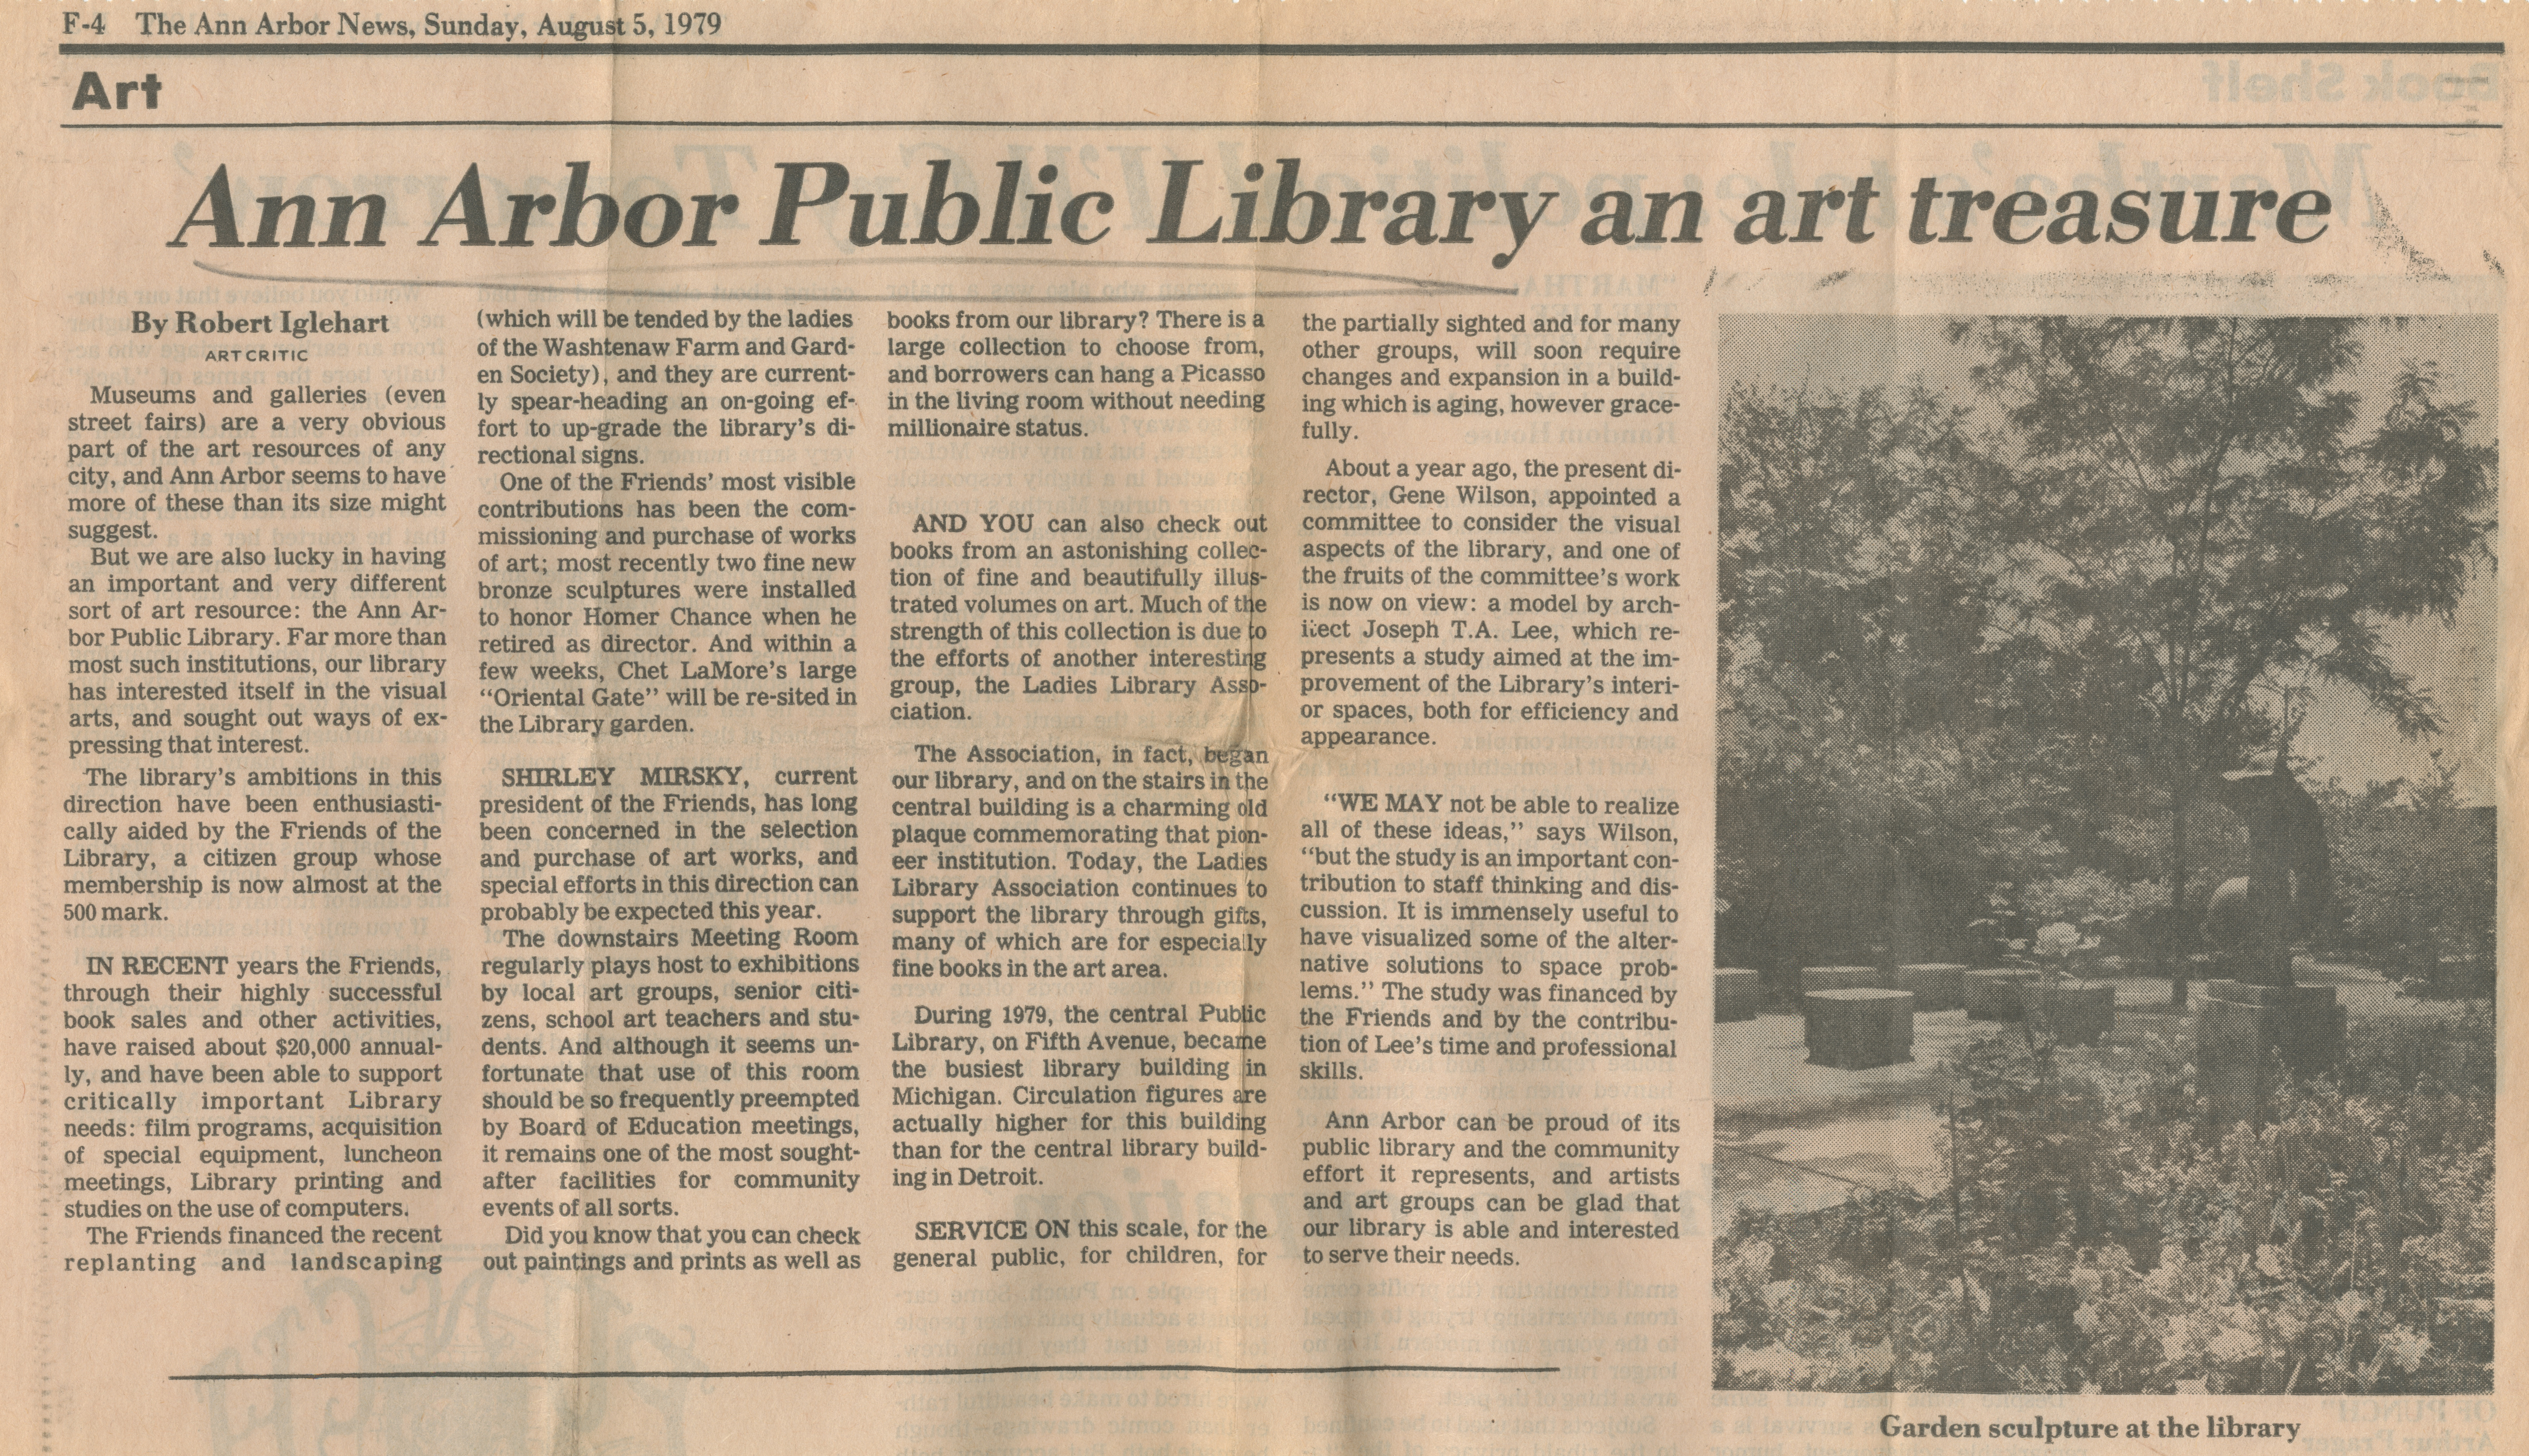 Ann Arbor Public Library An Art Treasure image